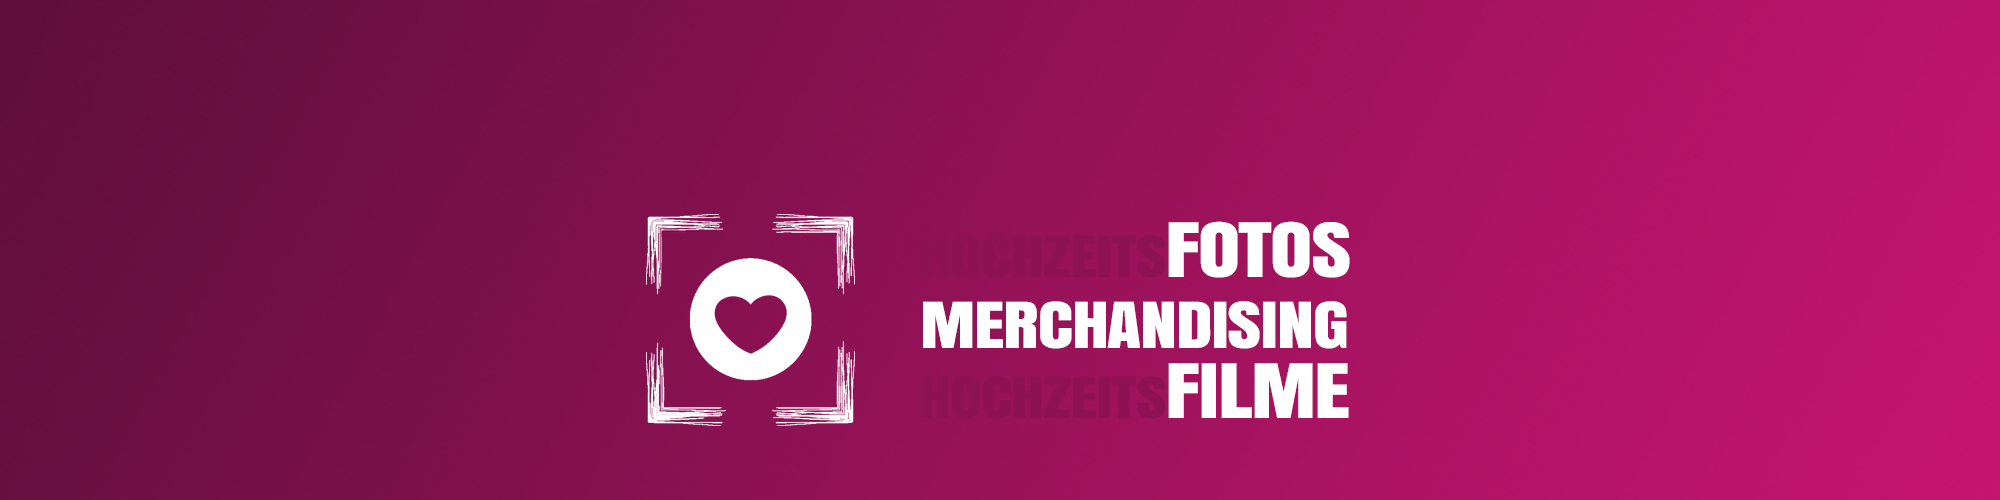 MW-fot-film-grafik1